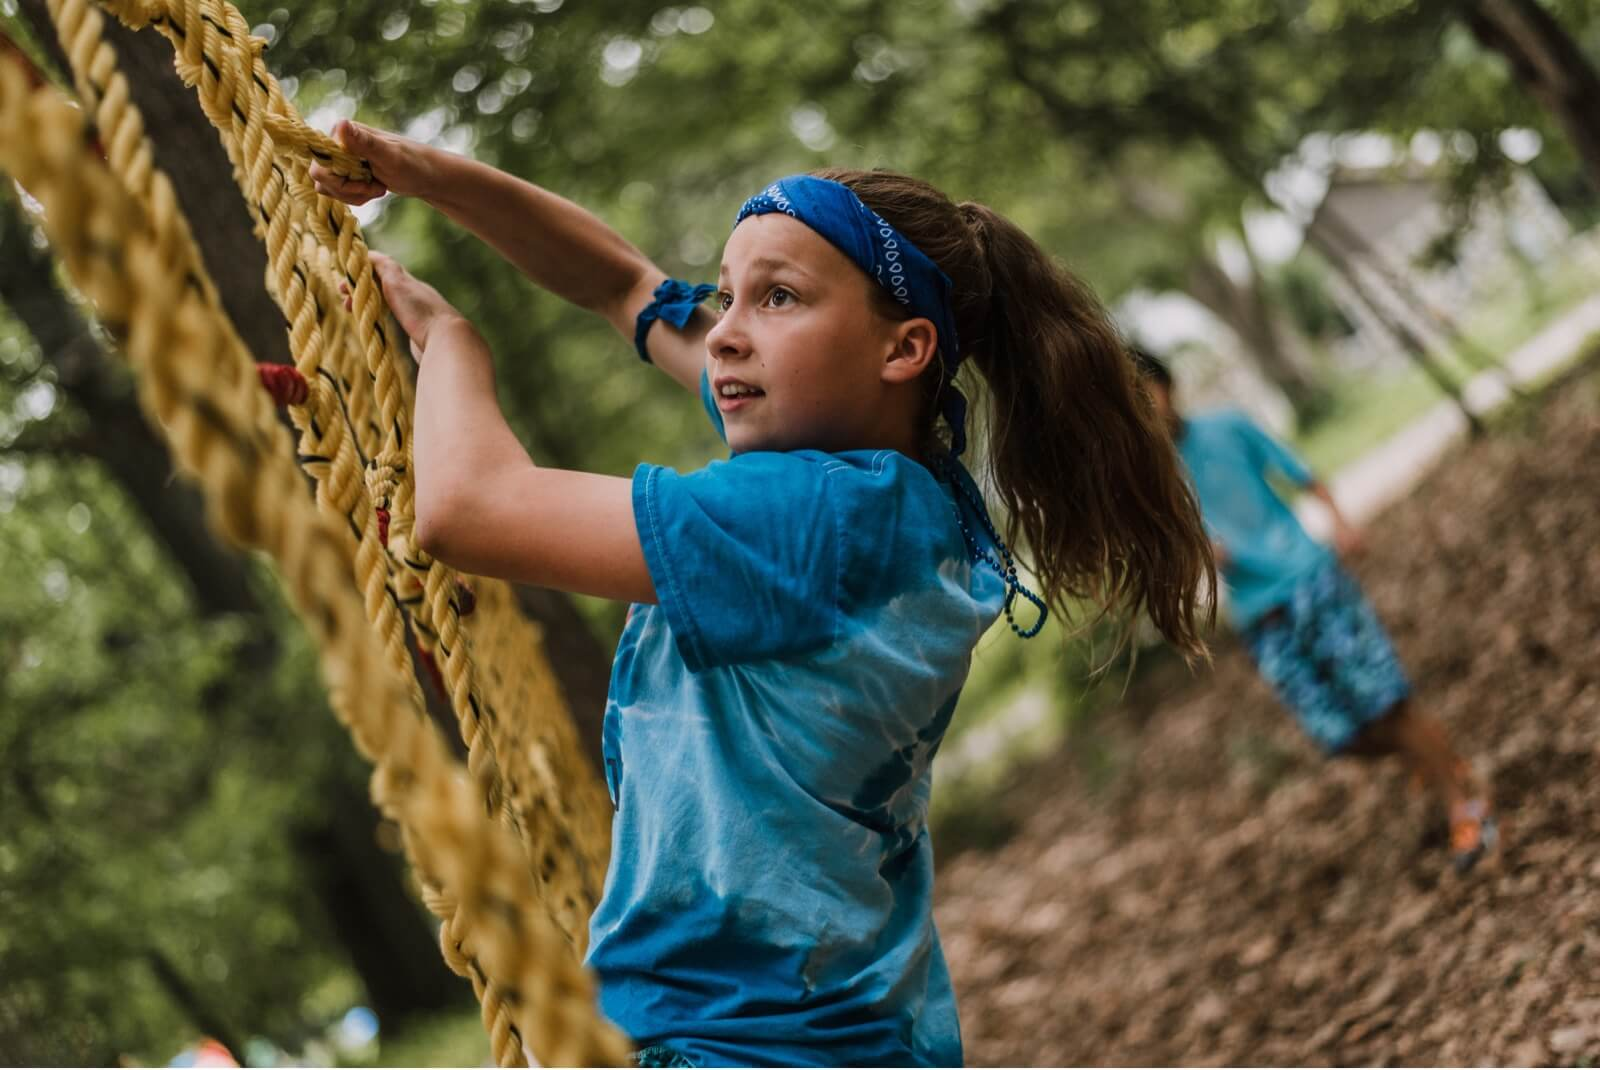 Camper climbing on a Ninja Warrior course